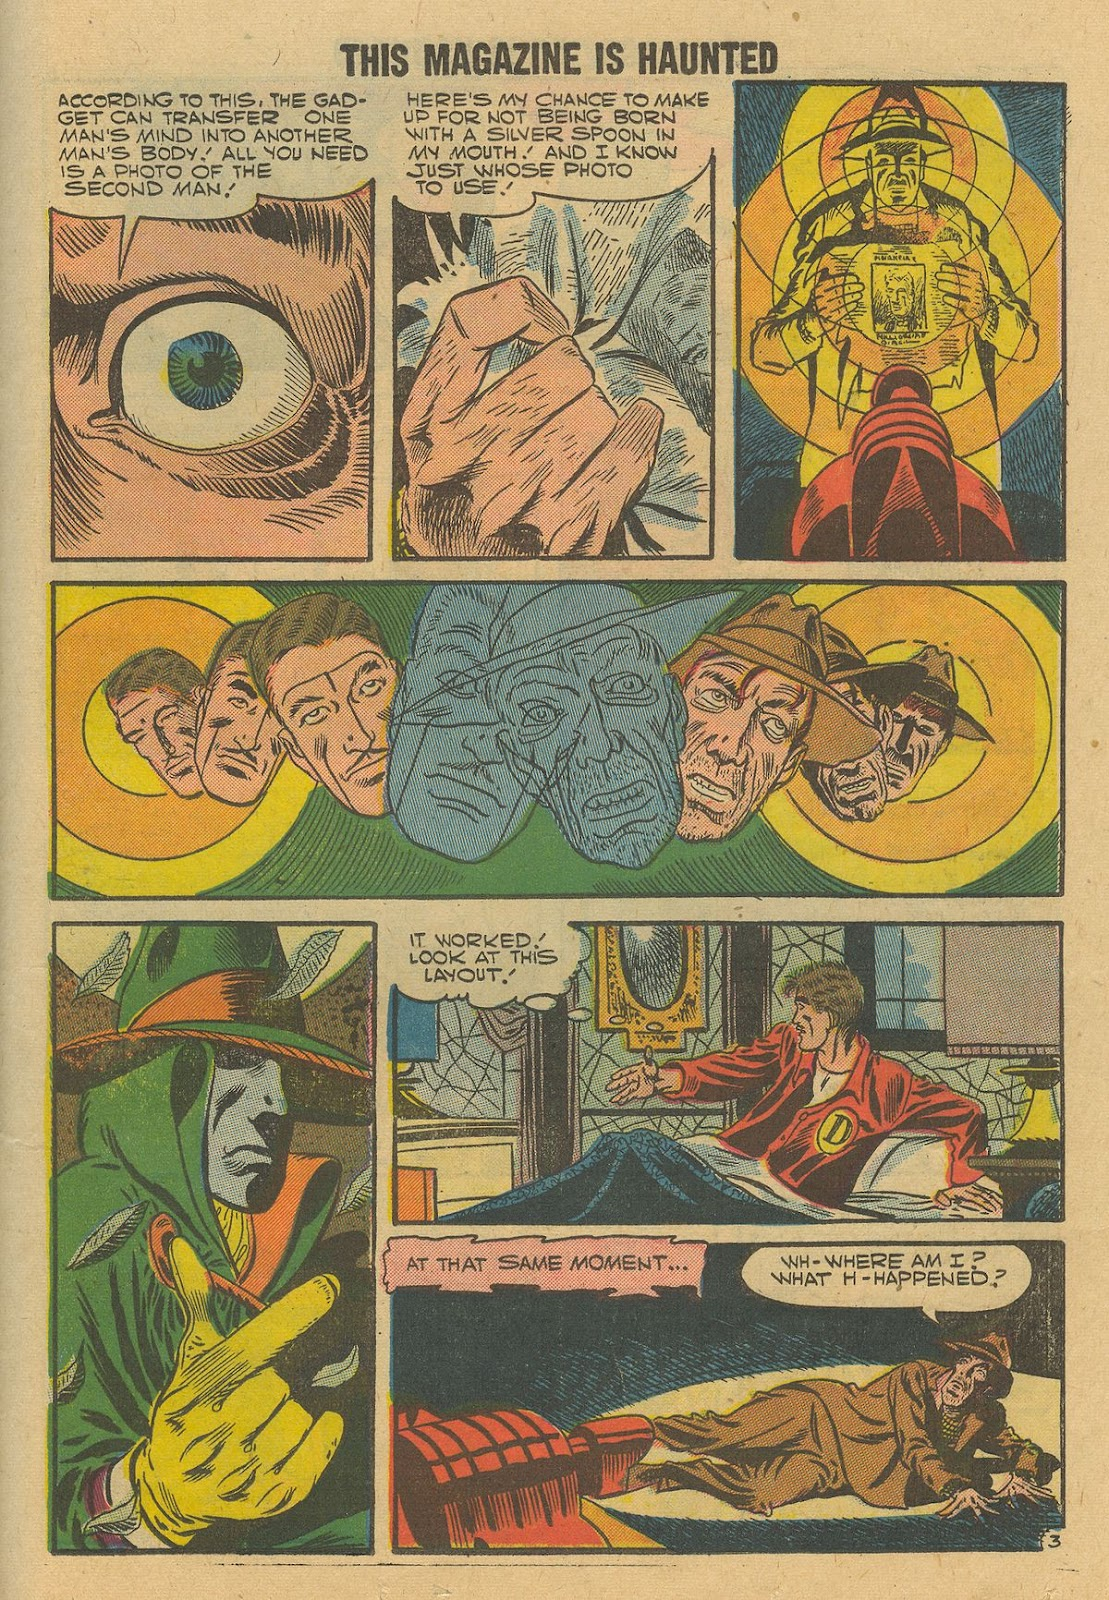 Read online This Magazine Is Haunted comic -  Issue #13 - 23